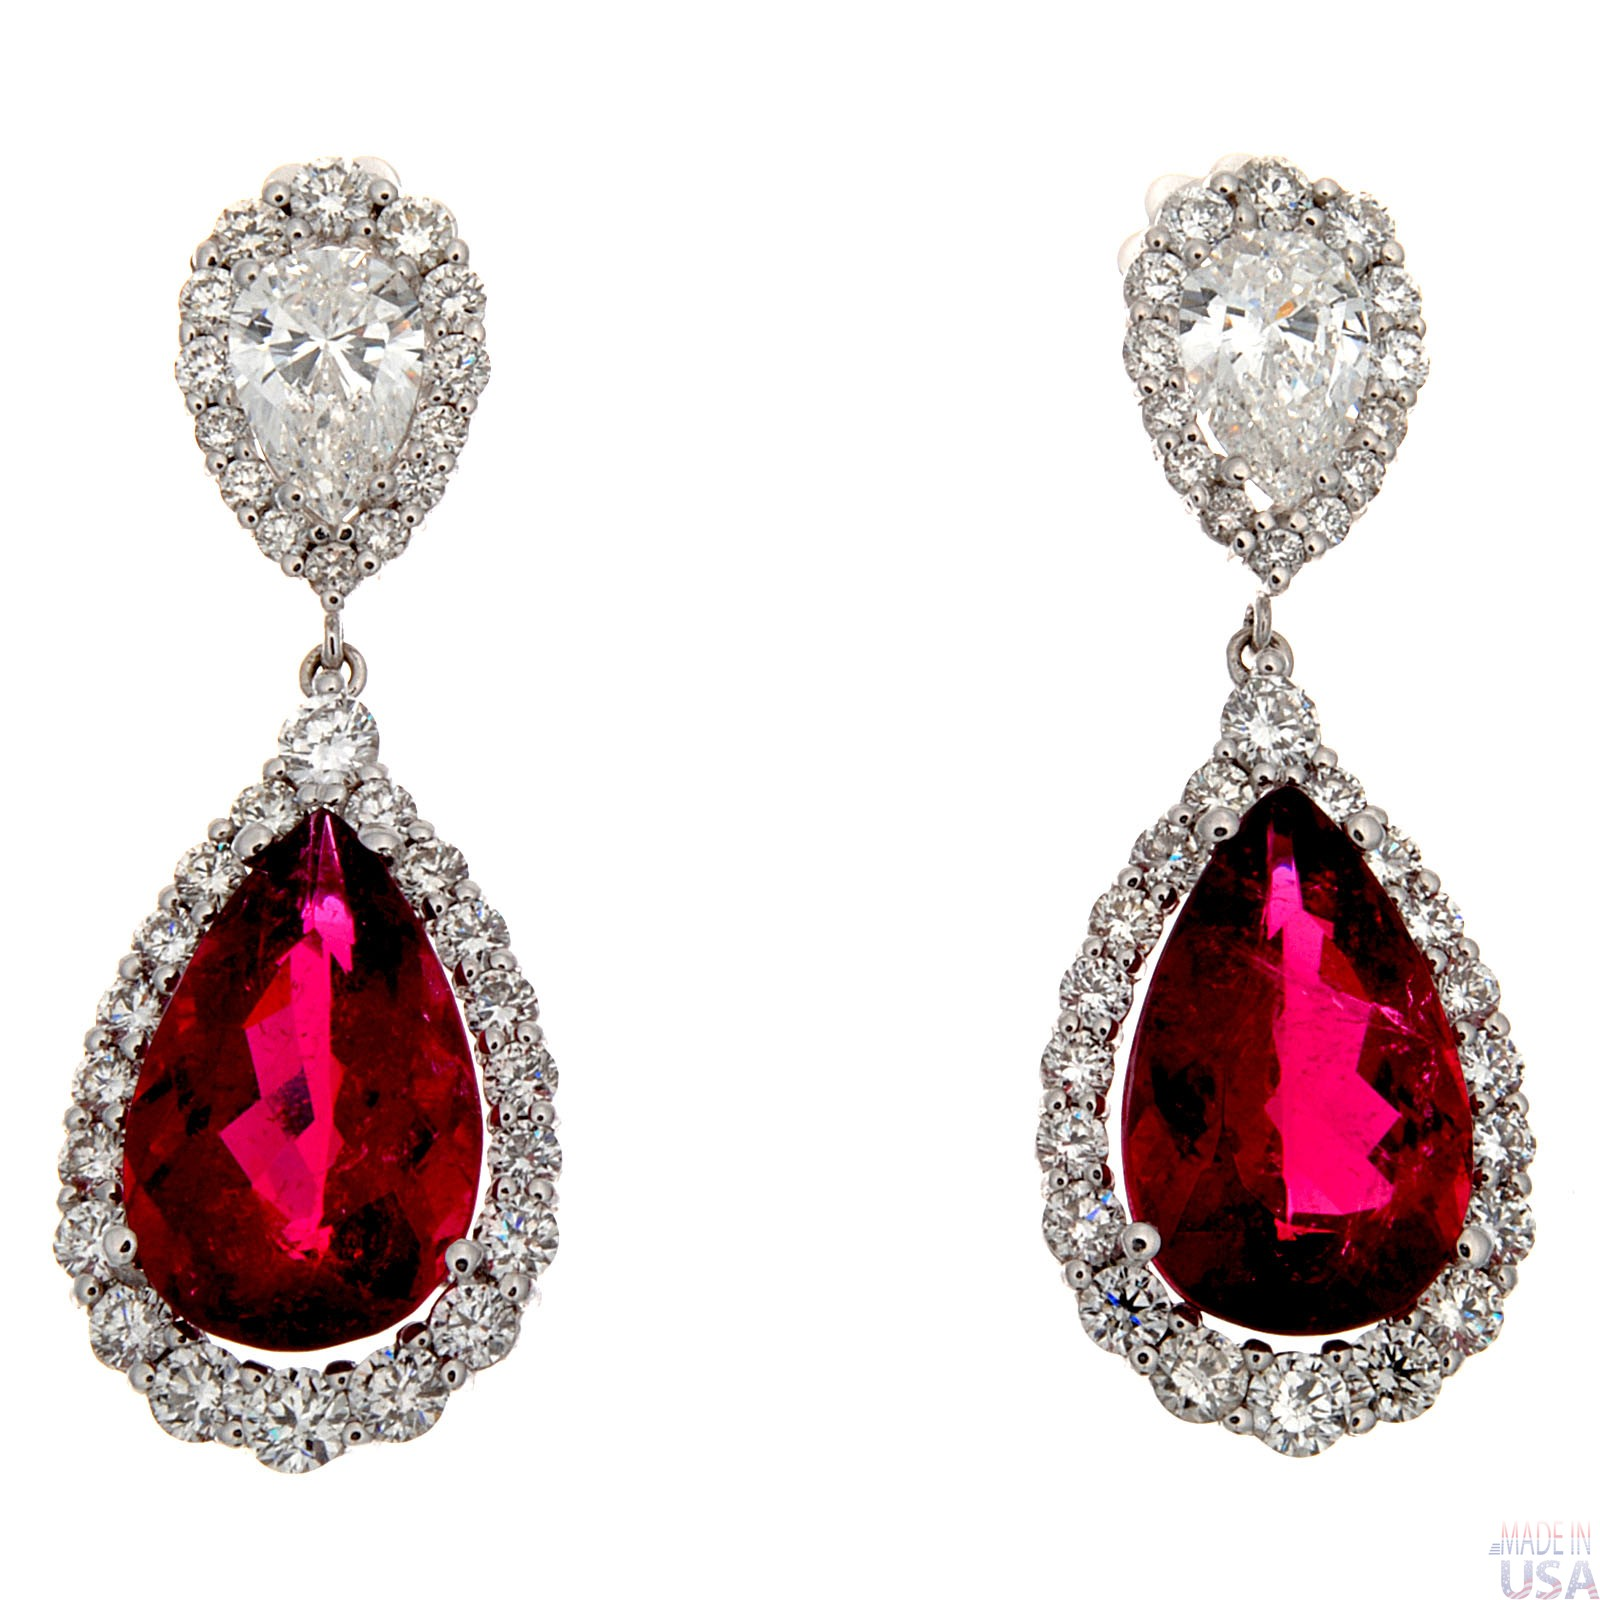 set classic round a earrings of diamond with drop jewellery pair tear collections rubies featuring and ruby graff bombe bomb